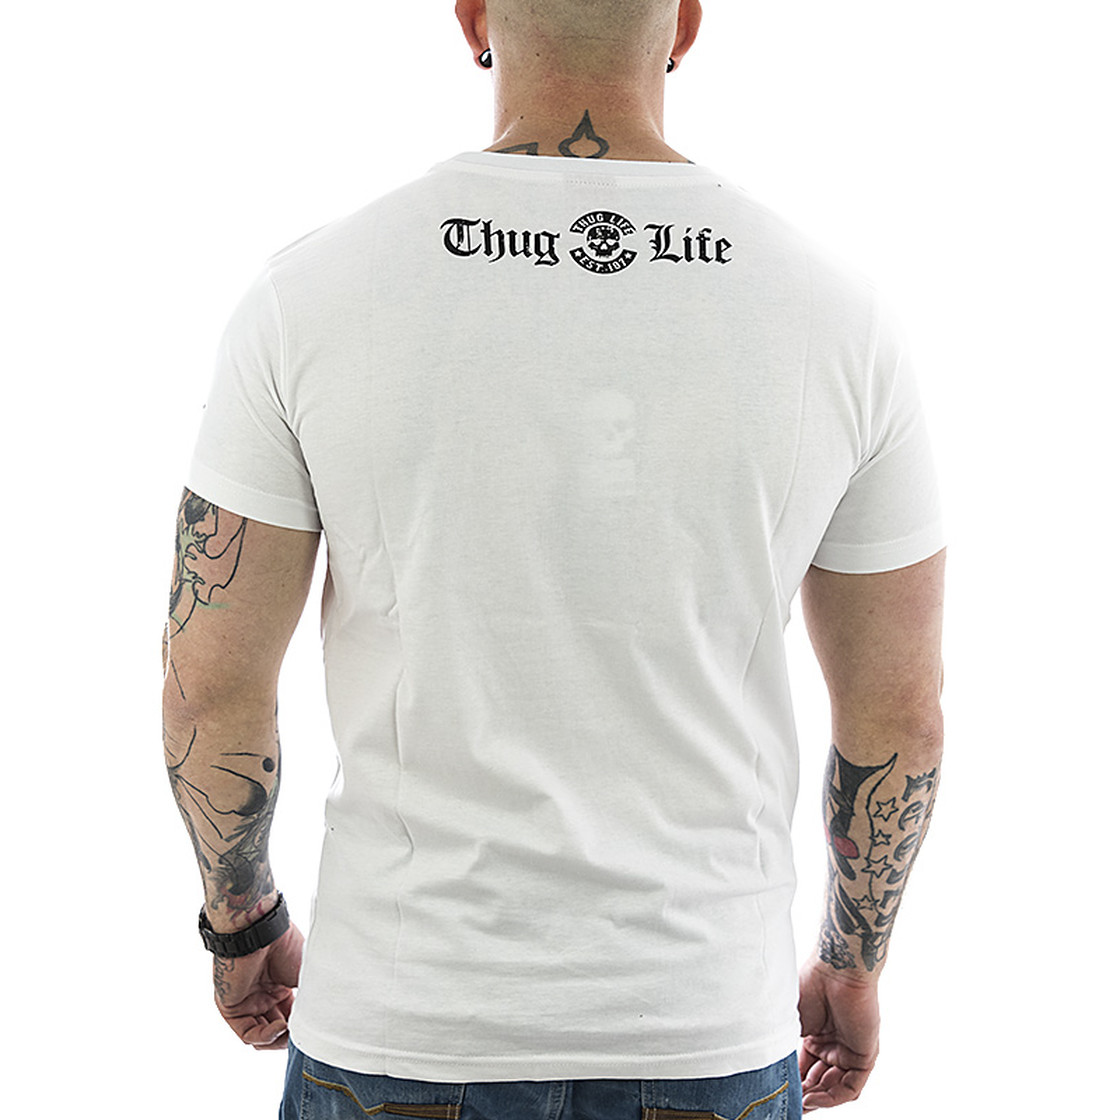 thug life herren t shirt established tl 131 wei 22. Black Bedroom Furniture Sets. Home Design Ideas